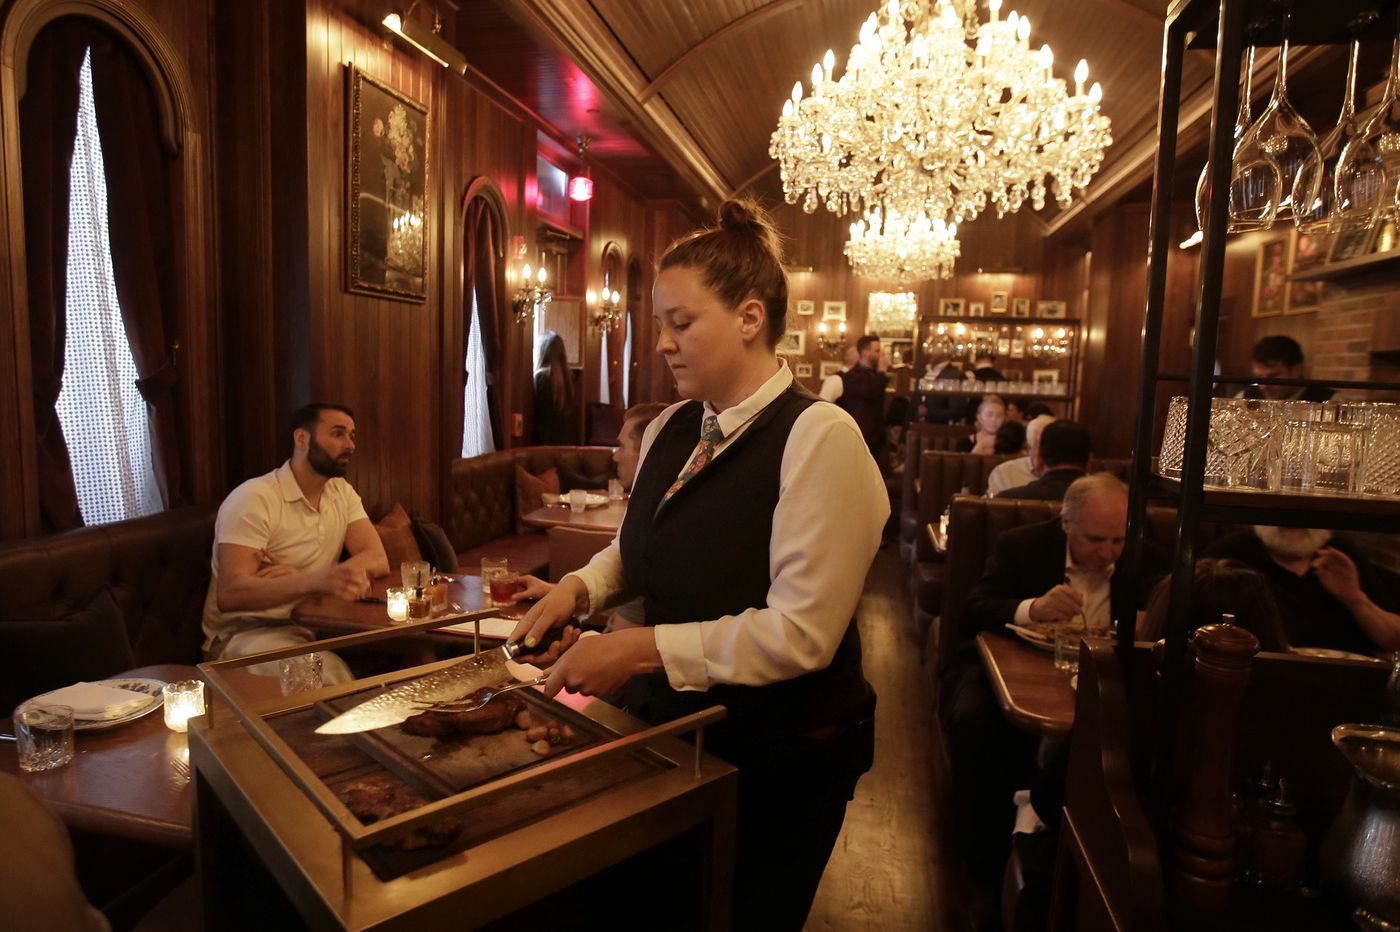 Alpen Rose review: 'Big Meat' comes to 13th Street in clubby boutique steak house